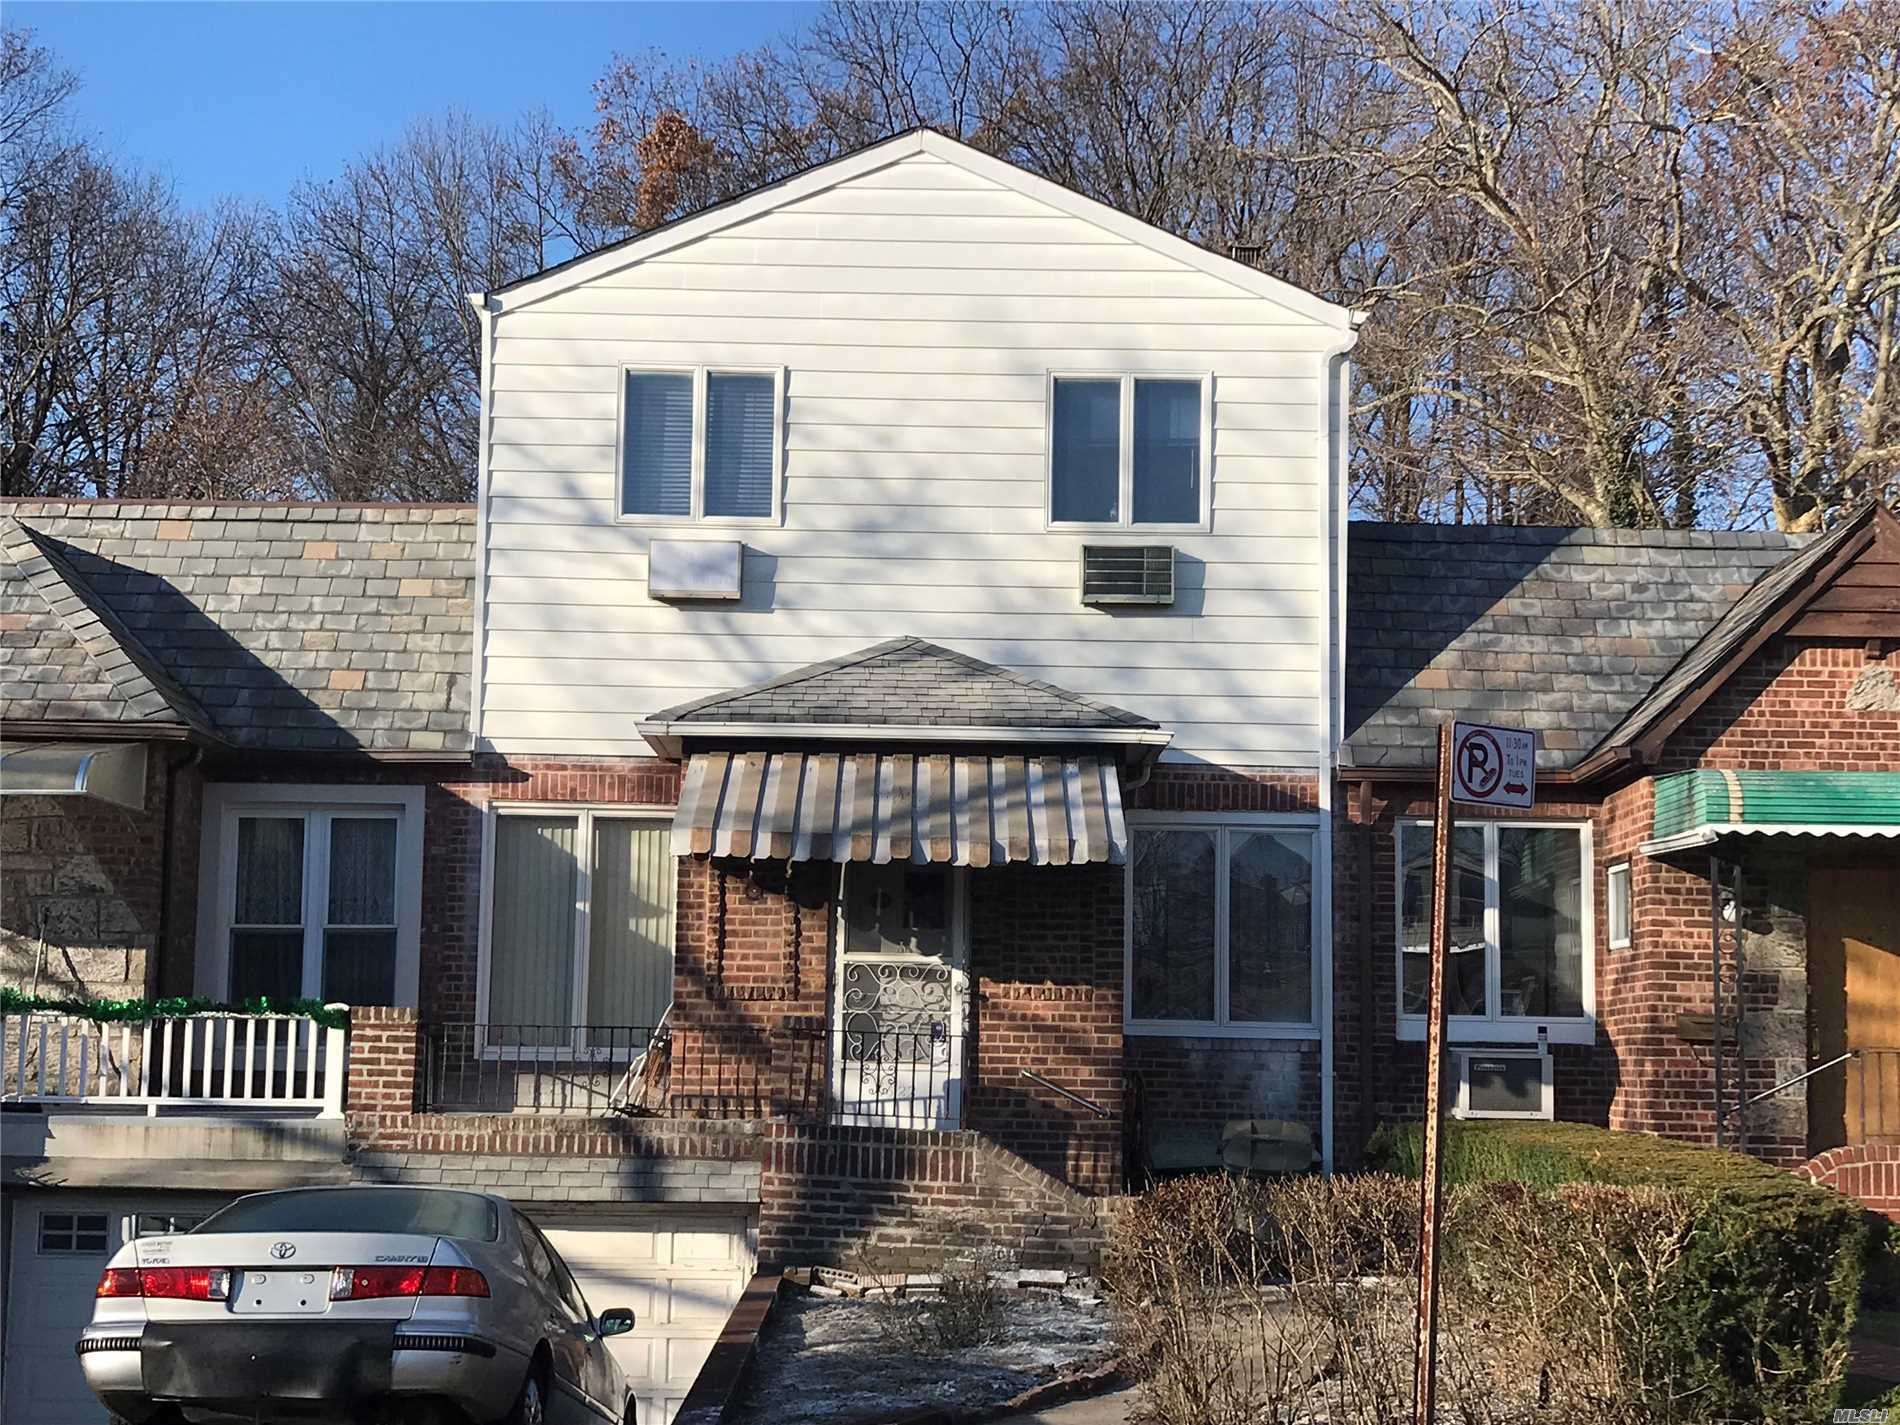 Large Newly Built And Stunningly Designed 2 Story Home 4 Br, 2 Bath With A Private Backyard In The Heart Of Forest Hills Lot 22'X100' Building Size 22'X43' Close To Shopping And Transportation. Ps 174